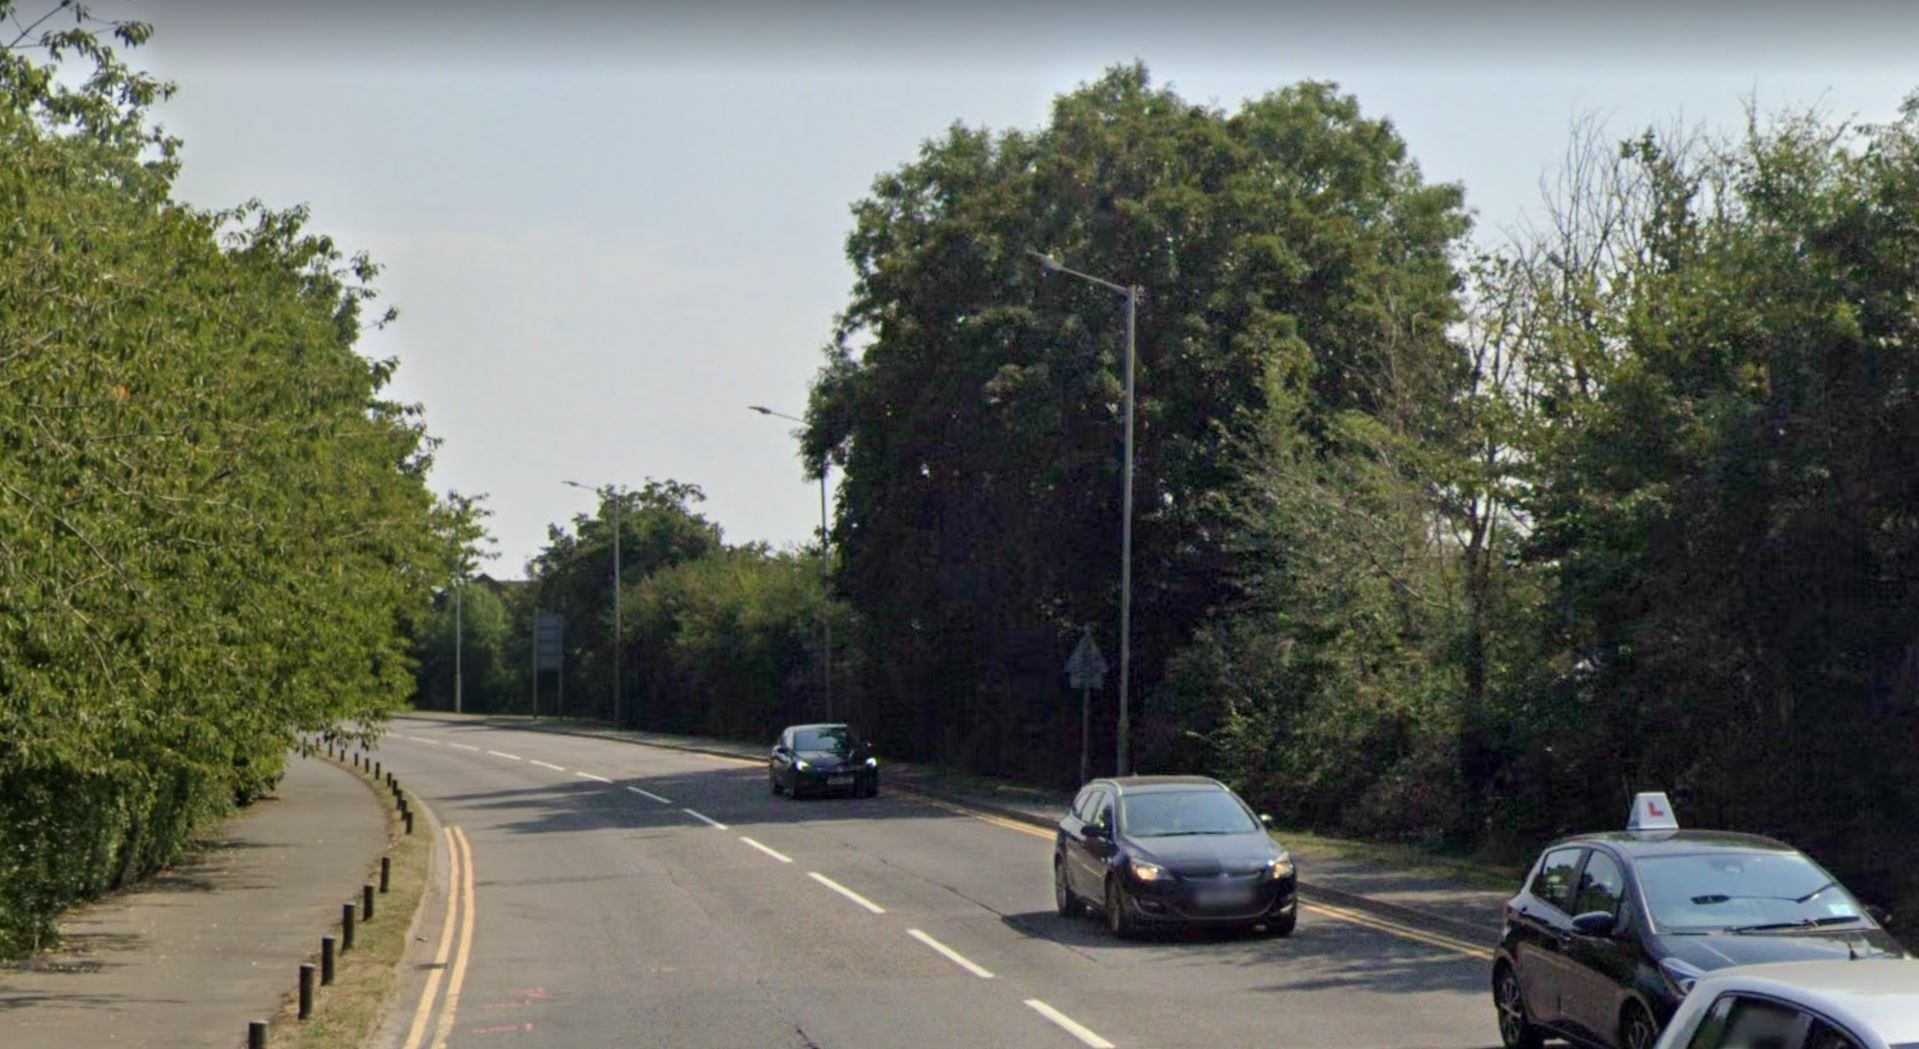 A41 Bicester Road closed after two serious crashes